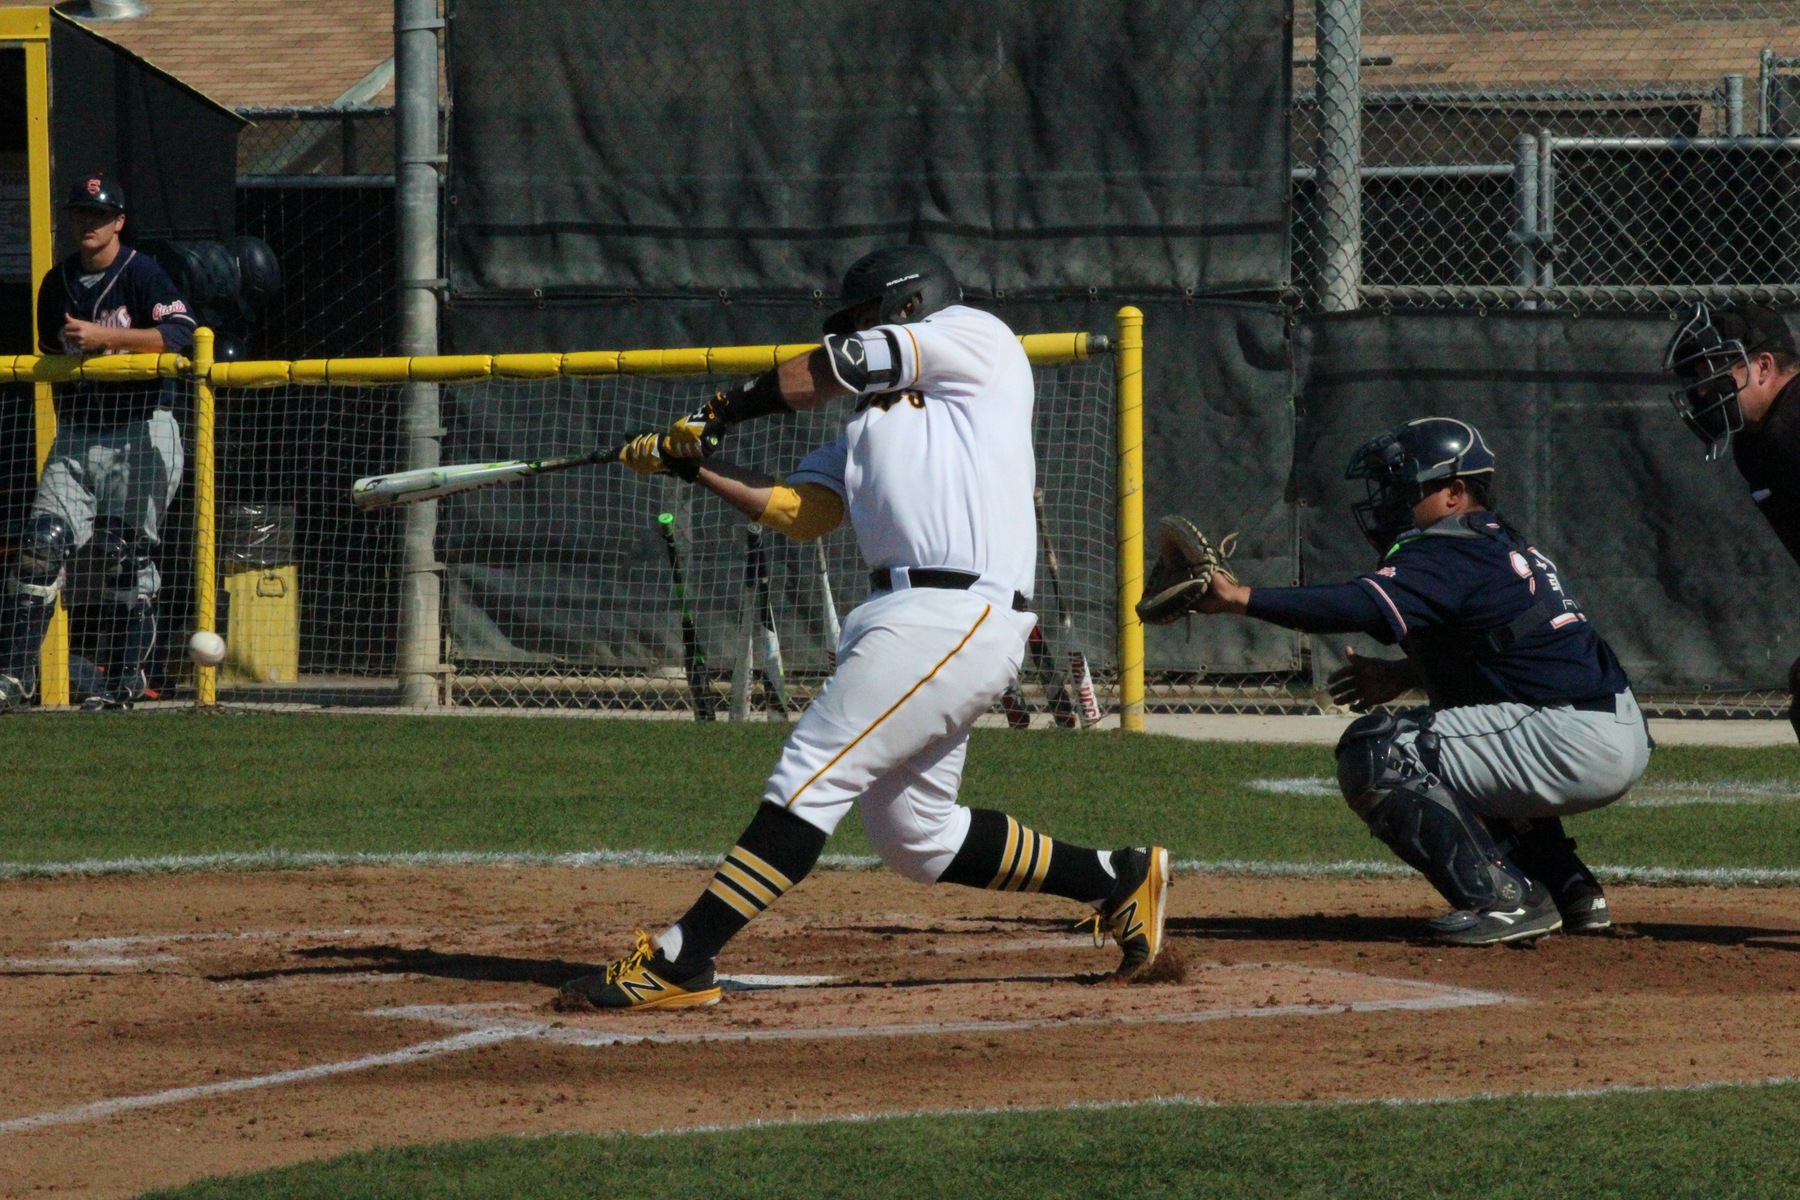 Taft College Catcher/DH Richard Ortiz